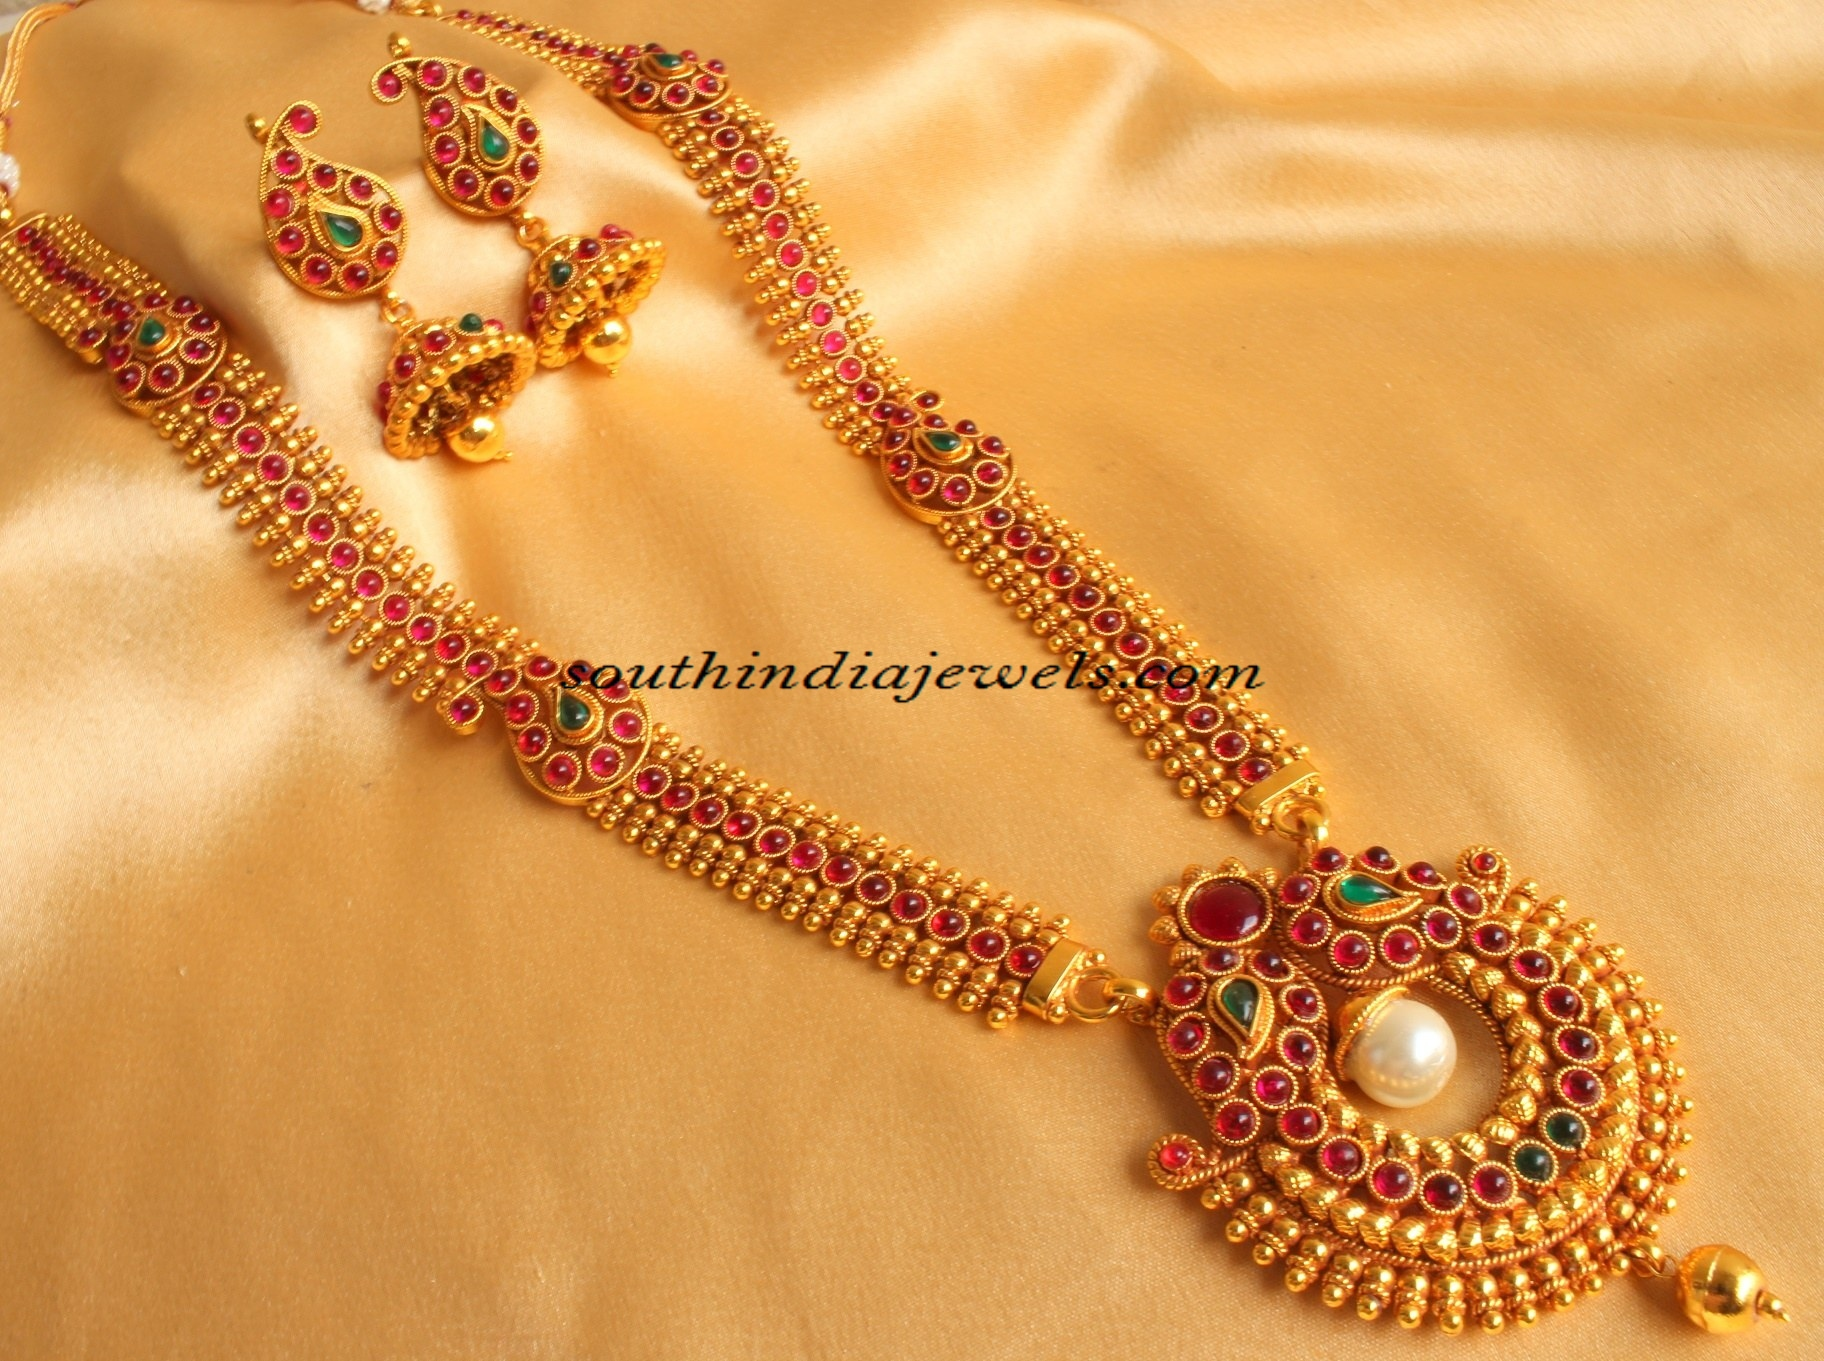 polish dp a plated s stylish looks four j like micro make gold chain this milan line on l imitation the real jewellery